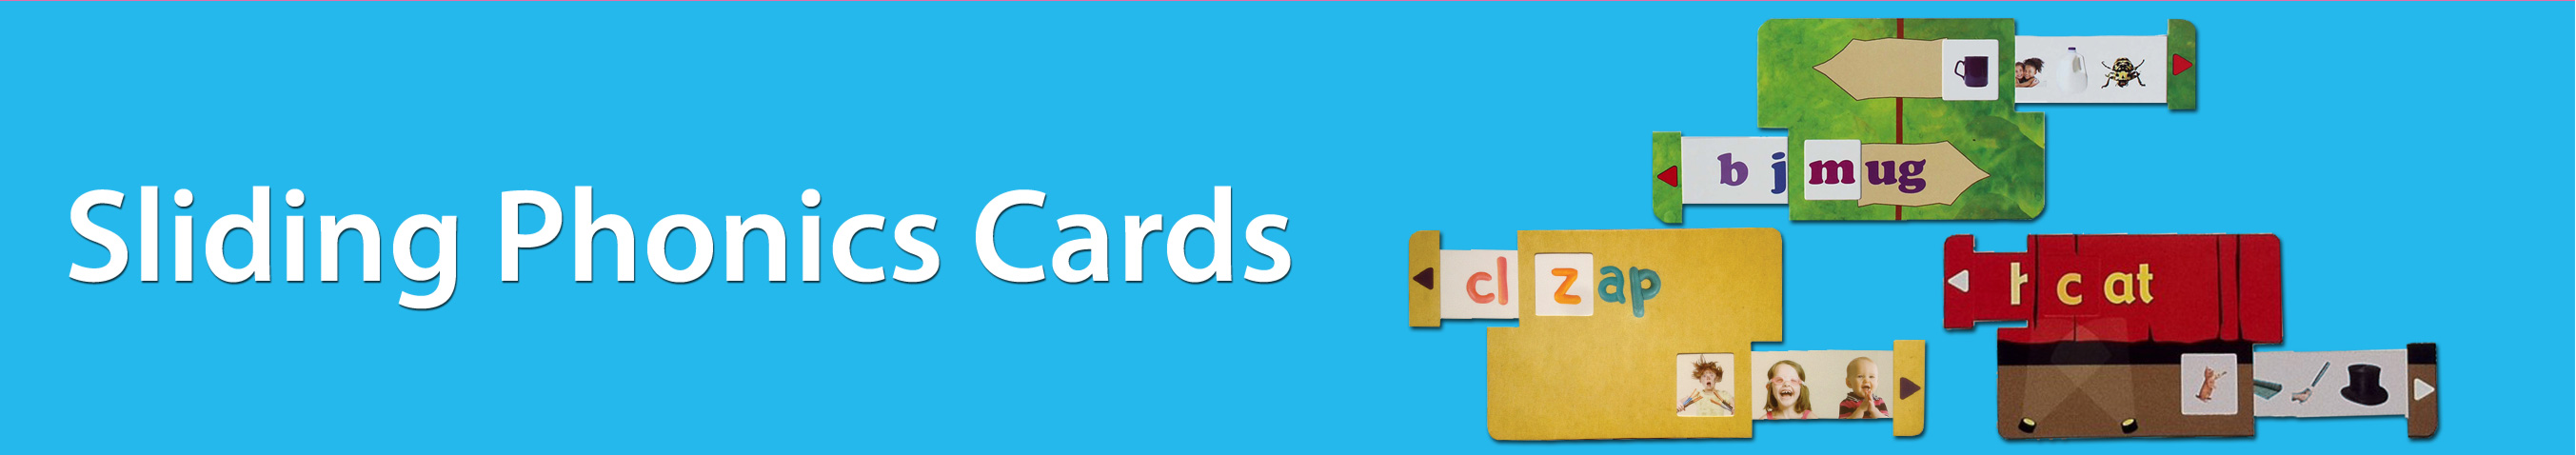 Your Child Can Read Sliding Phonics Cards